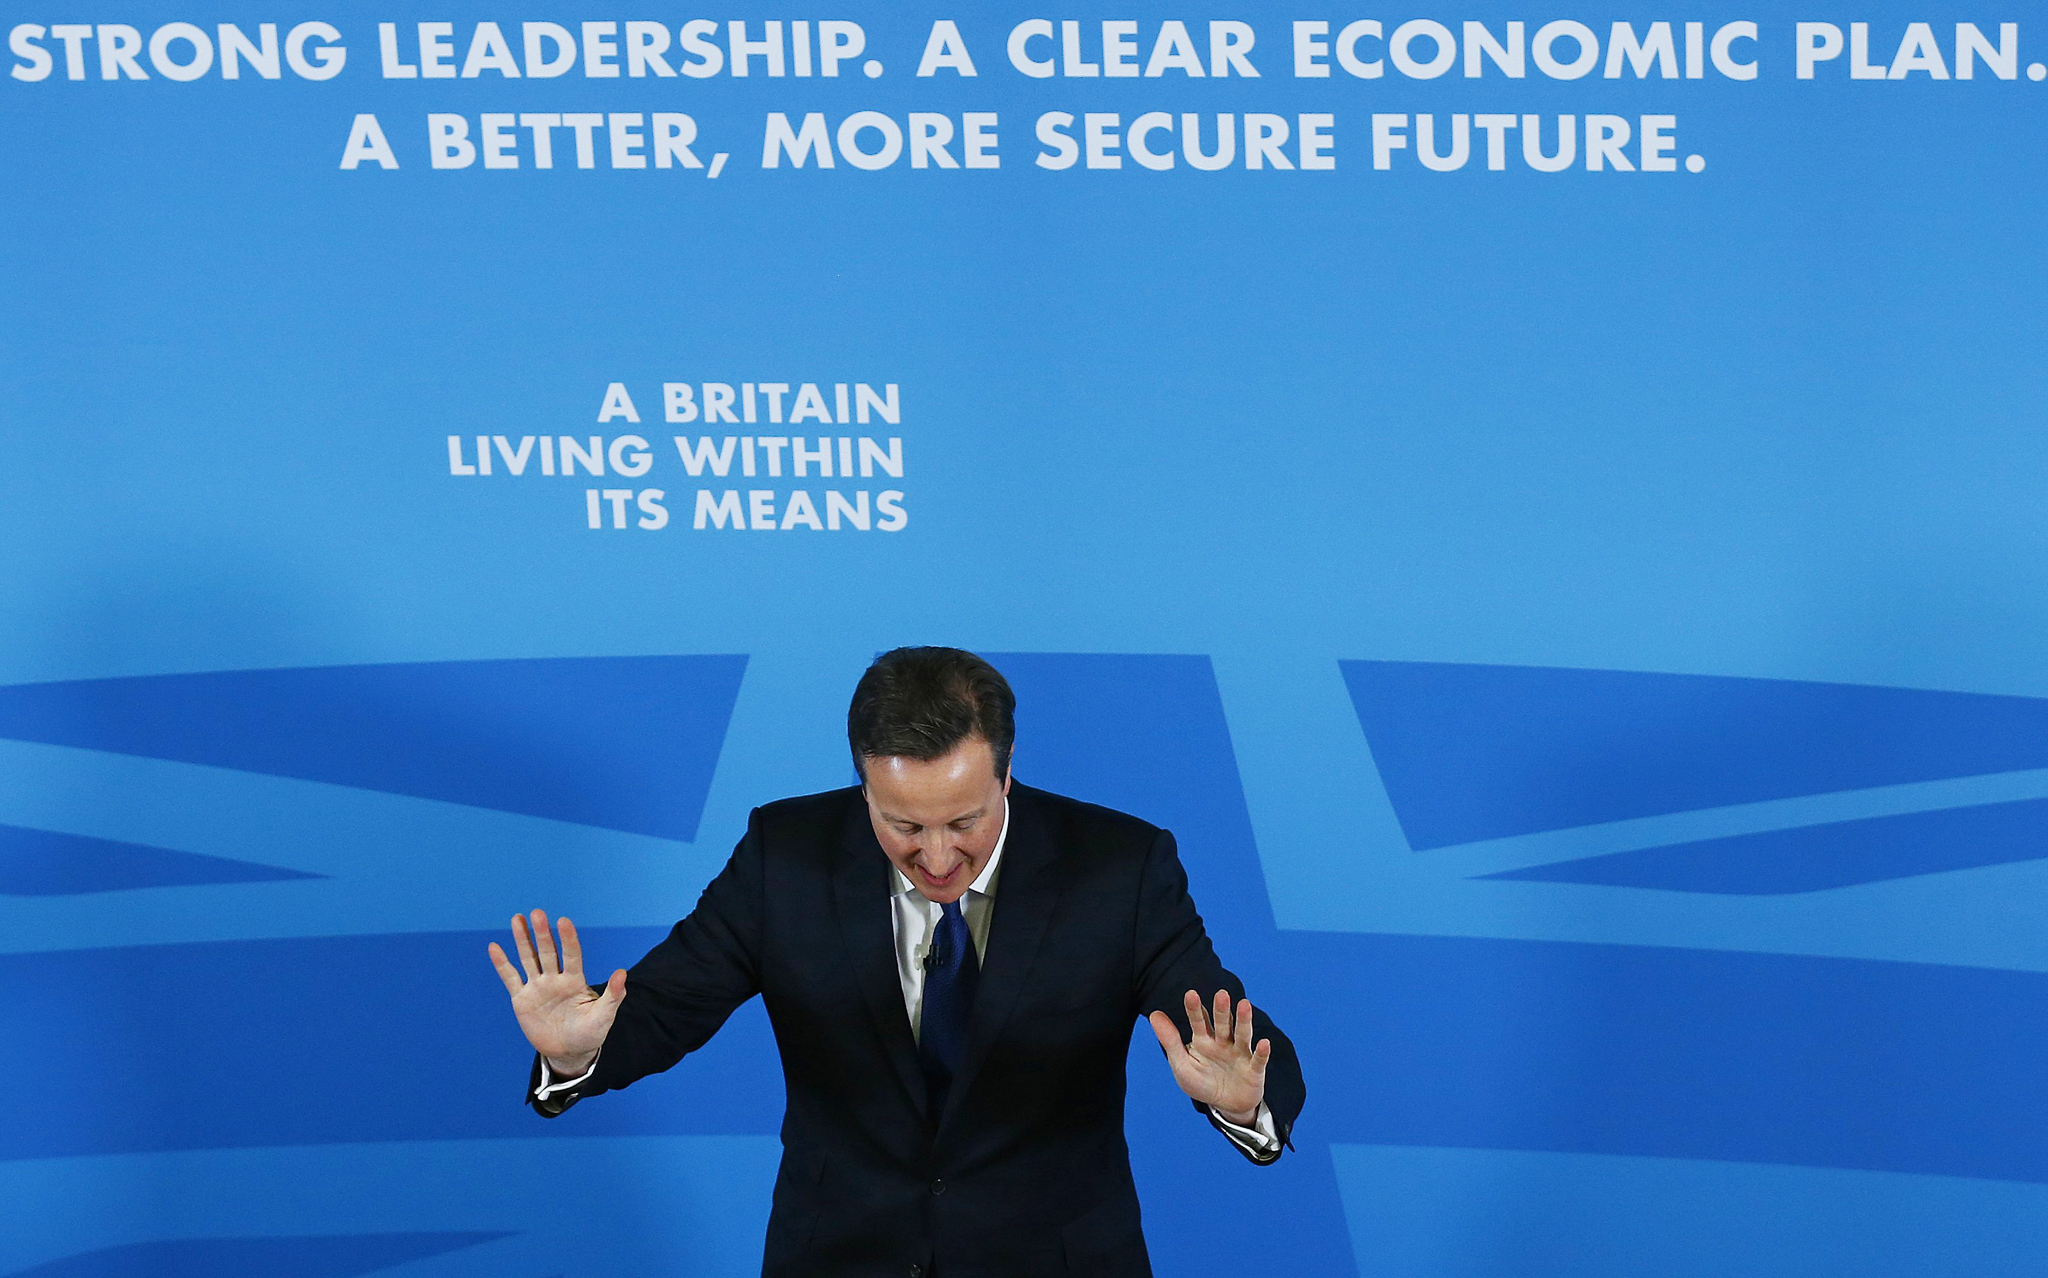 Britain's Prime Minister David Cameron gestures as he delivers a speech on the economy, in Nottingham, central England January 12, 2015.